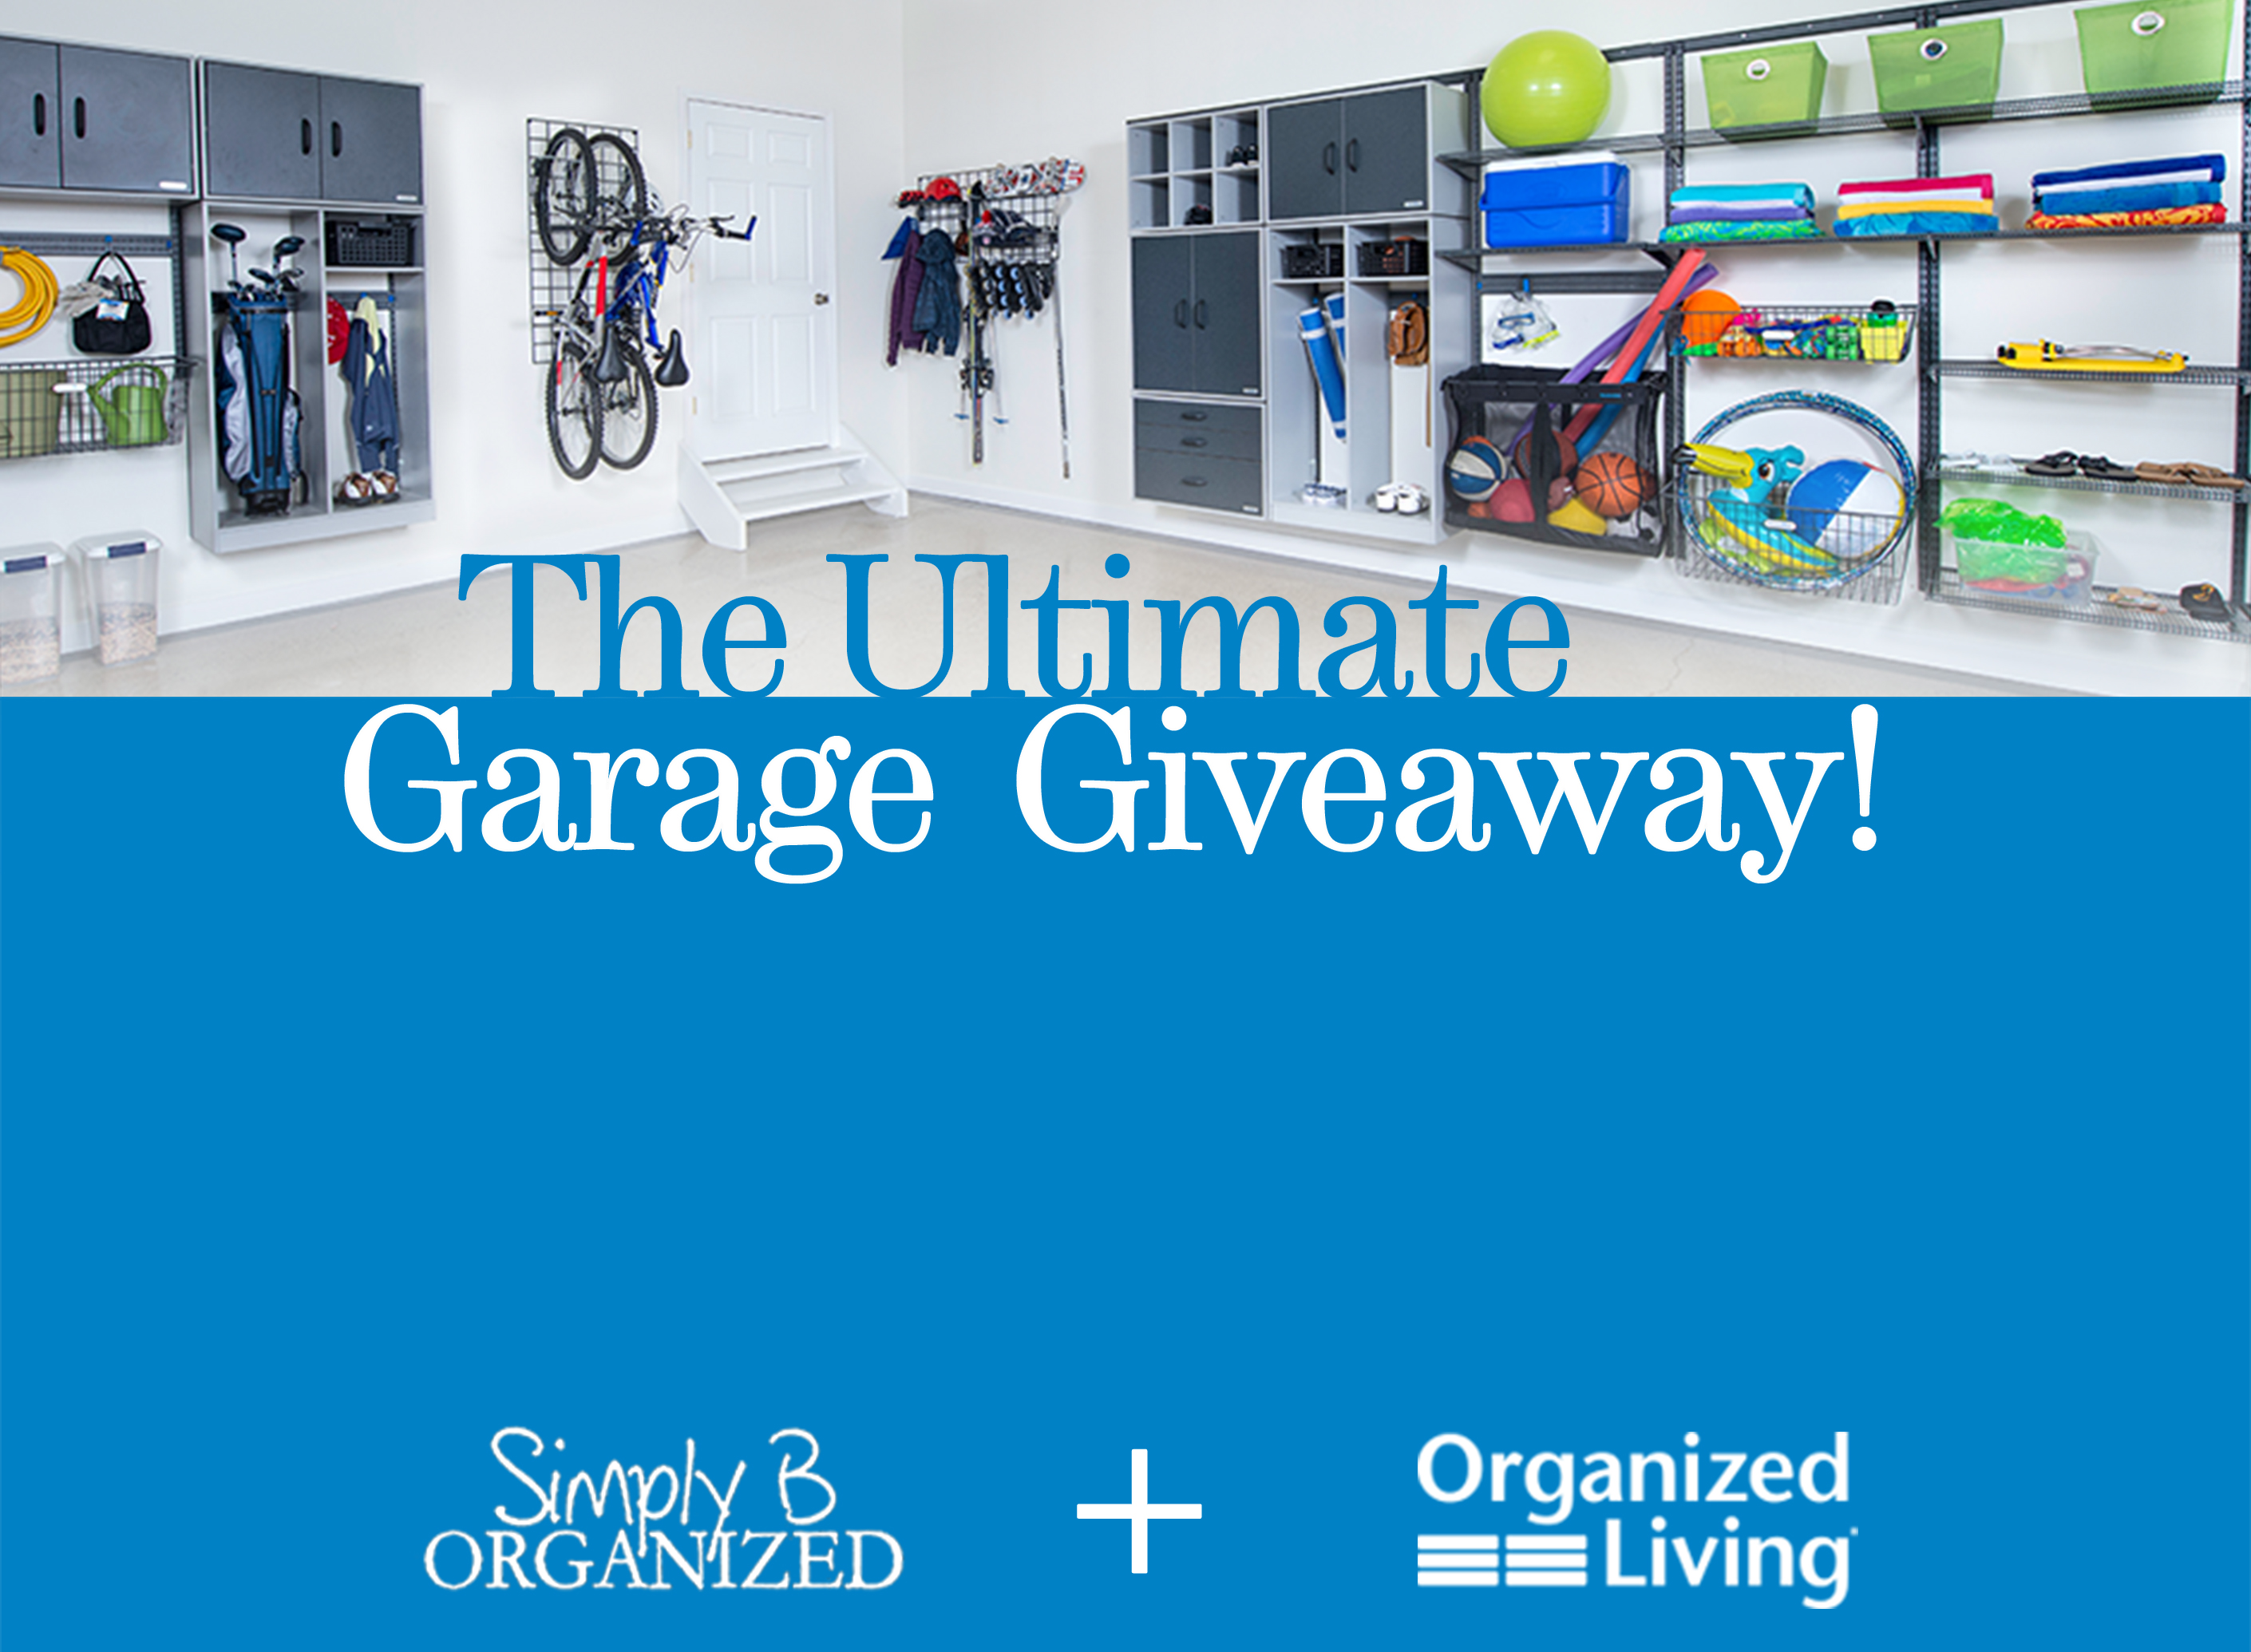 The Ultimate Garage Giveaway!